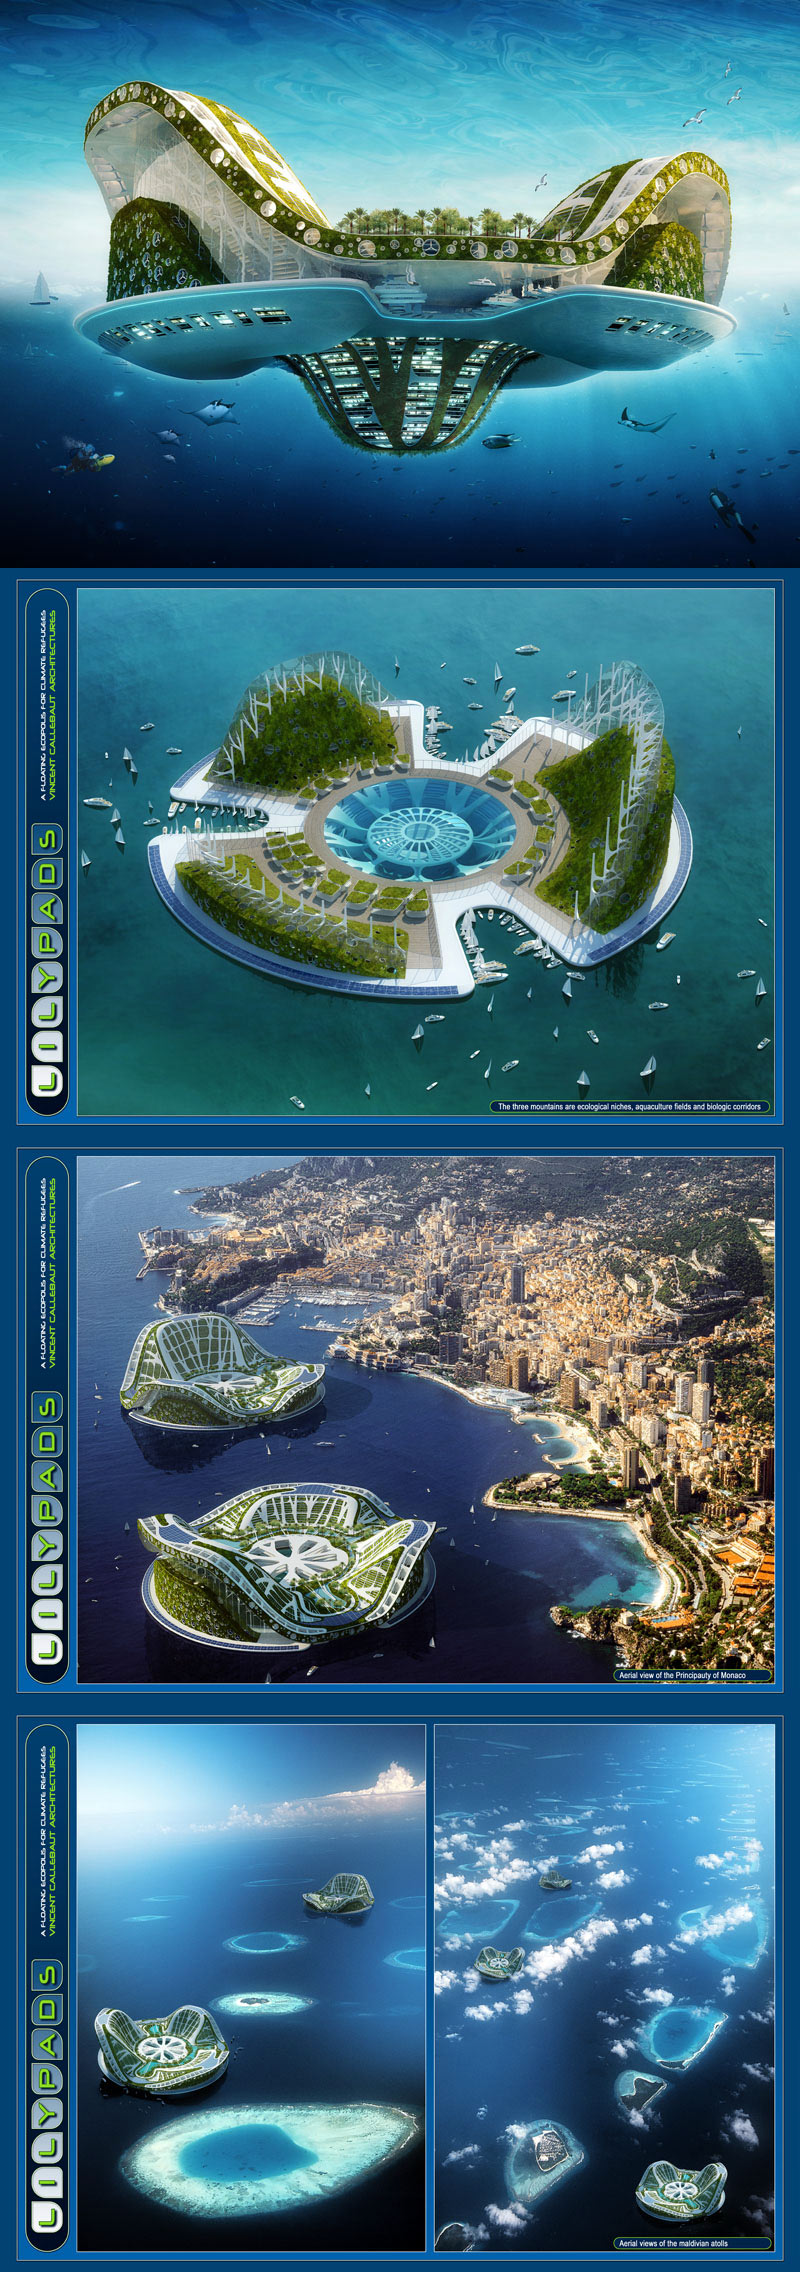 Architects Like Vincent Callebaut Really Push Imagination And